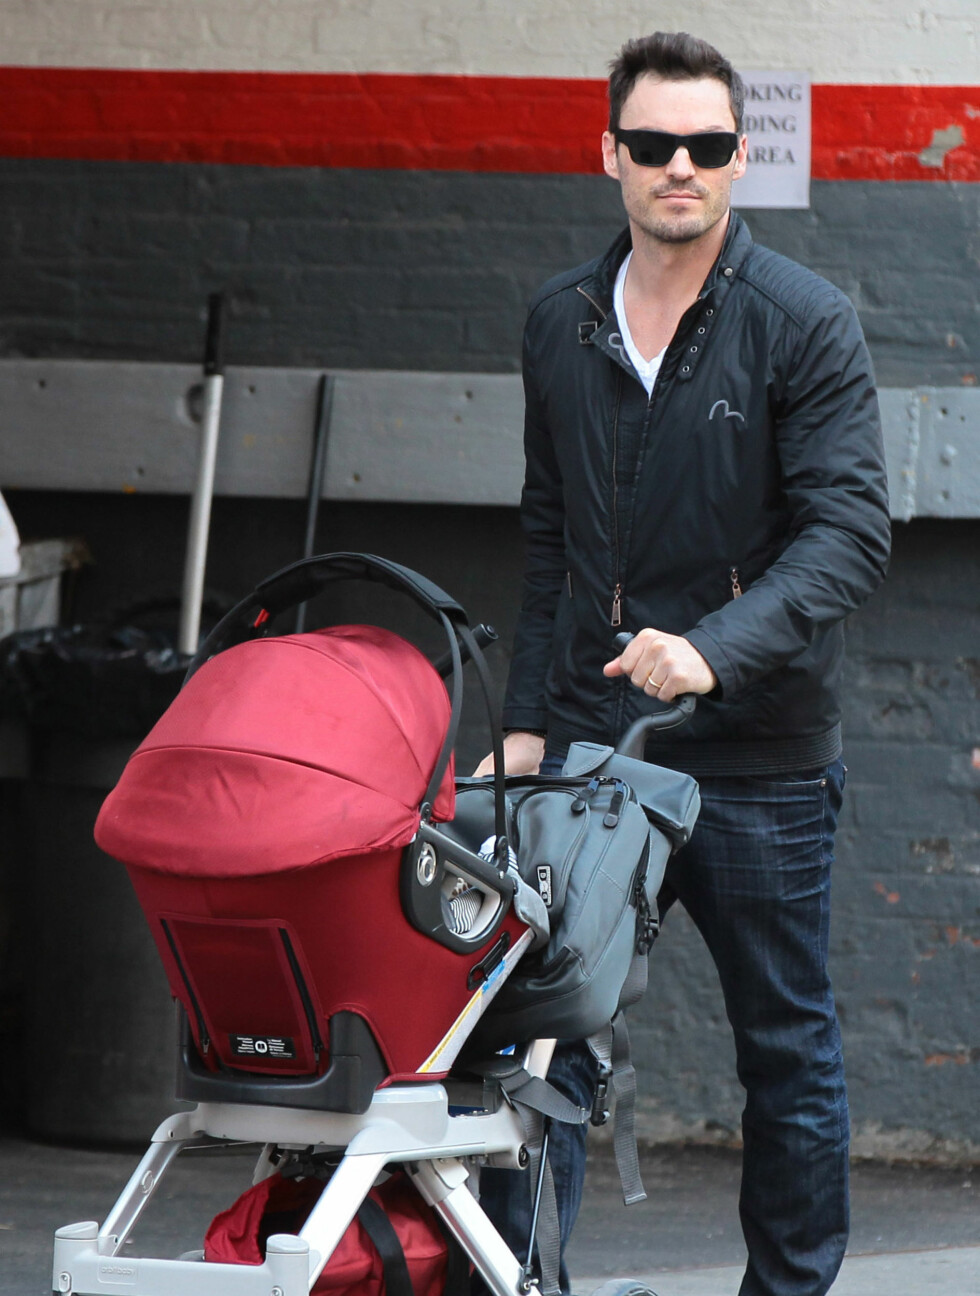 51052602 Last Stop actor Brian Austin Green out for a stroll with his son Noah in New York City, New York on March 29, 2013.  COPYRIGHT FAMEFLYNET Foto: FameFlynet